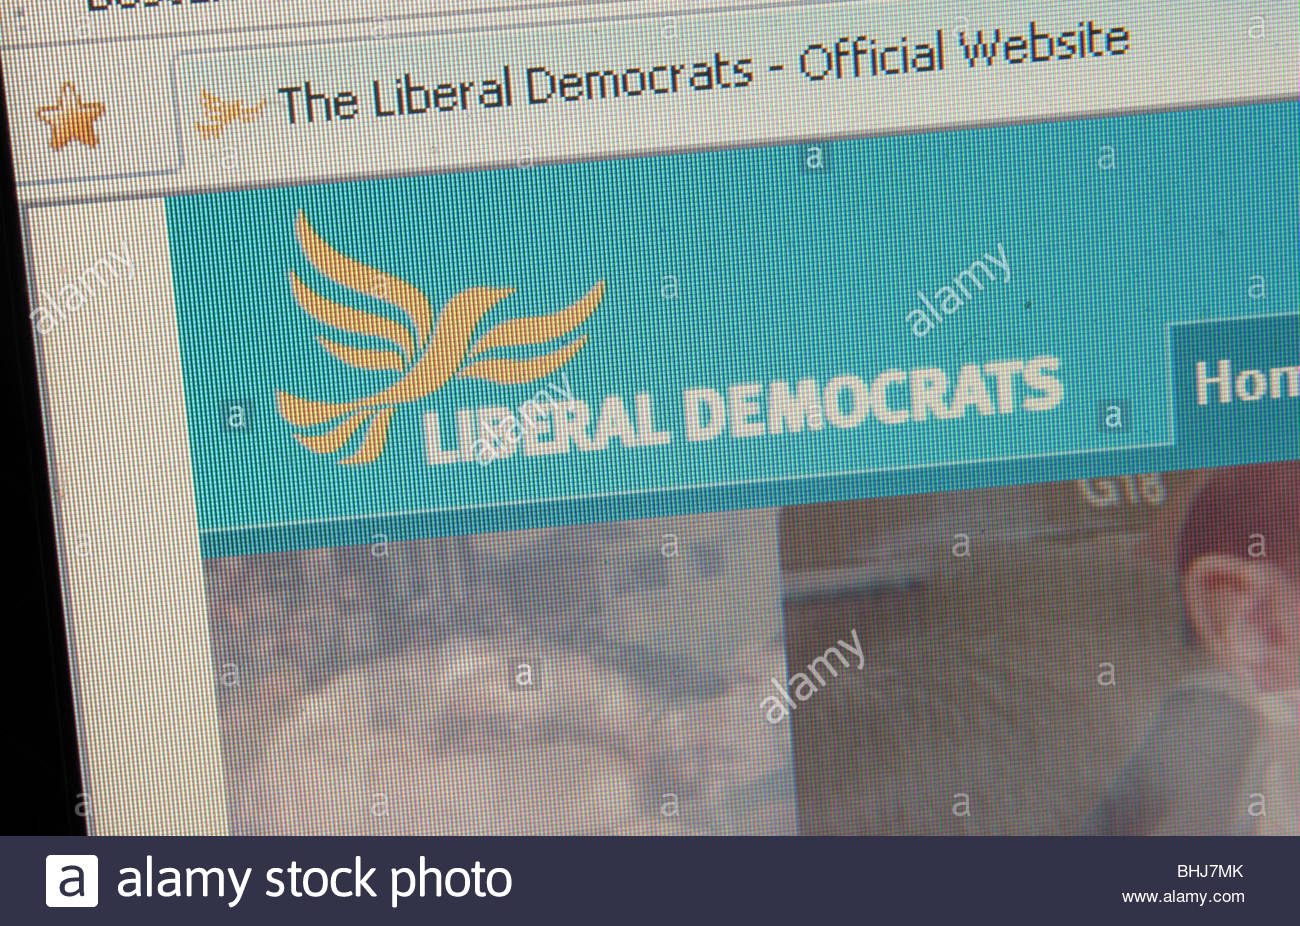 Website of the UK Liberal Democrats. - Stock Image